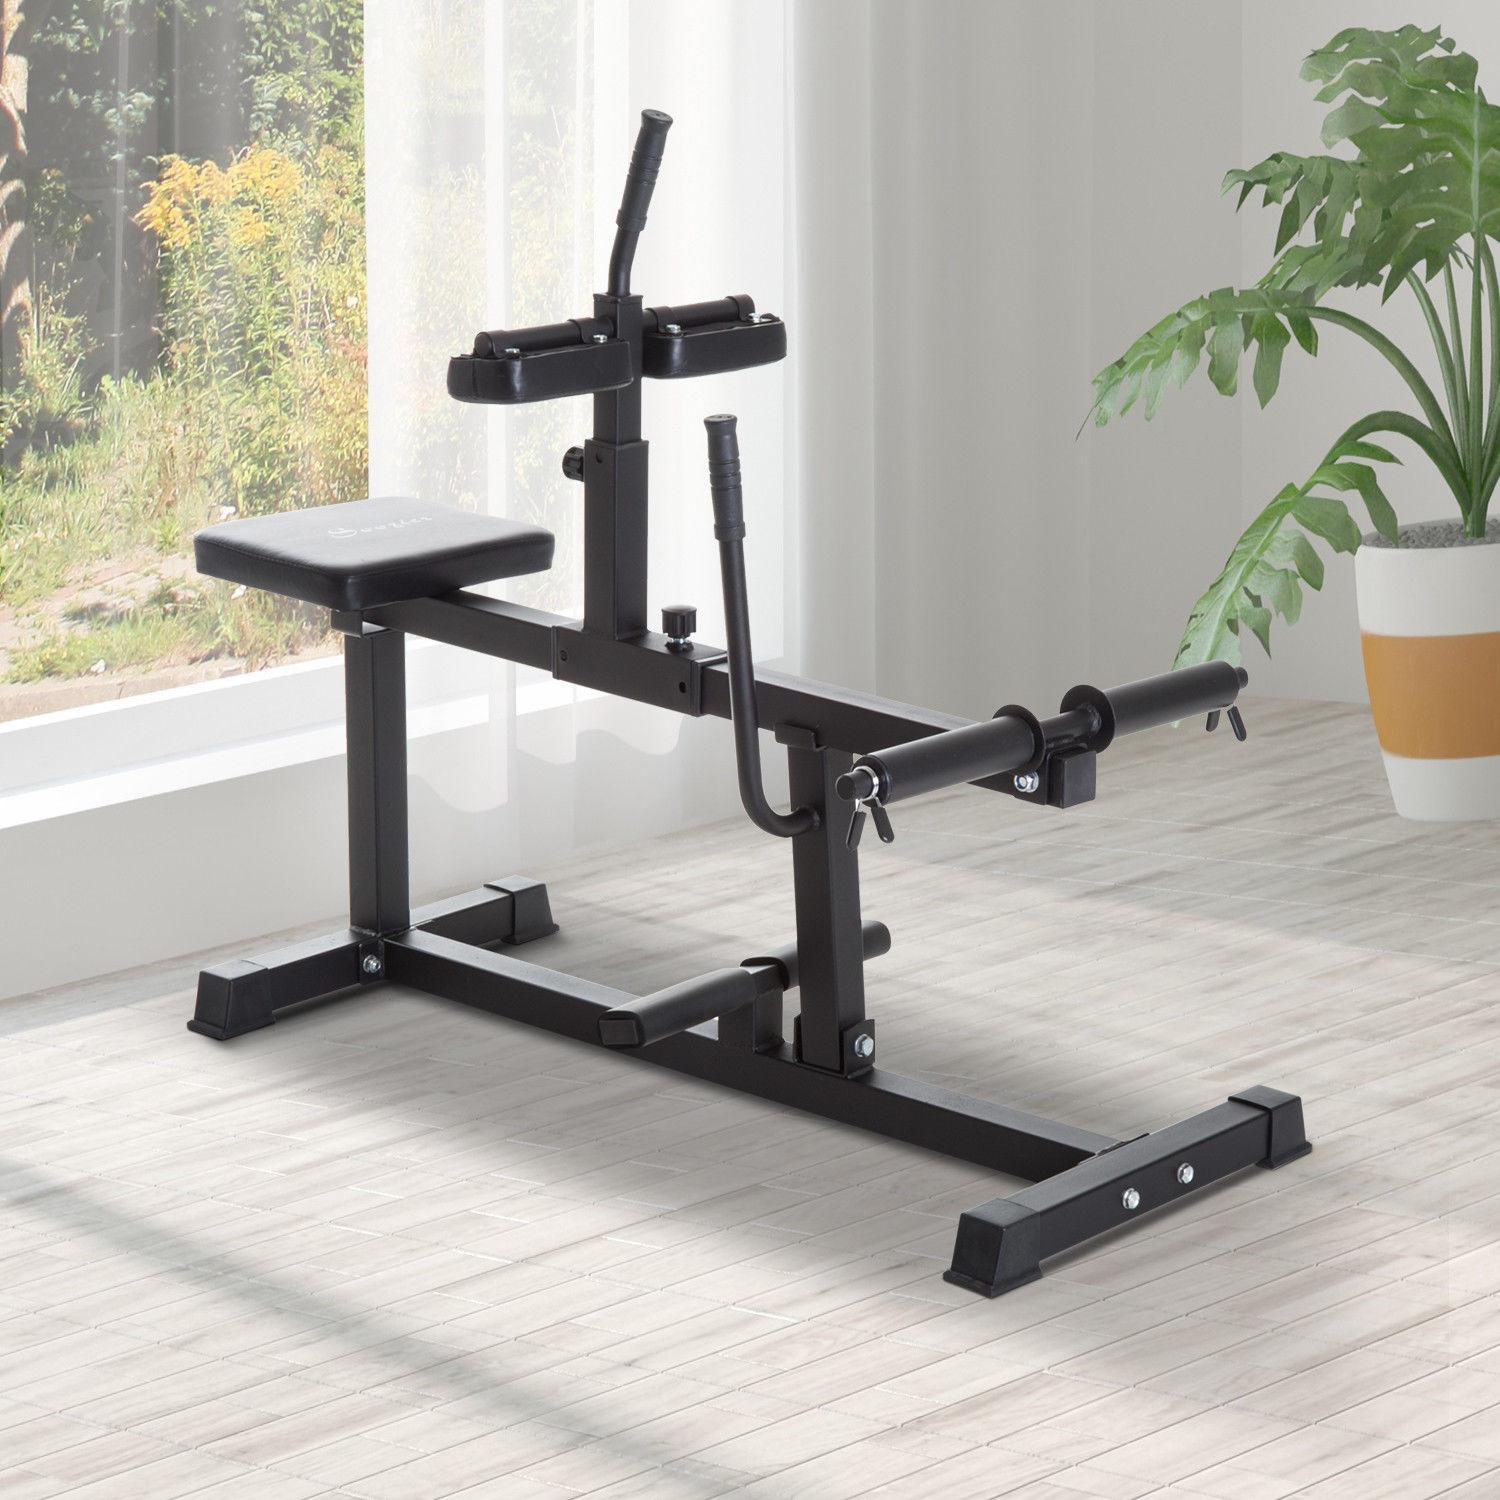 Soozier Adjustable Steel Seated Calf Raise Exercise Gym Equipment